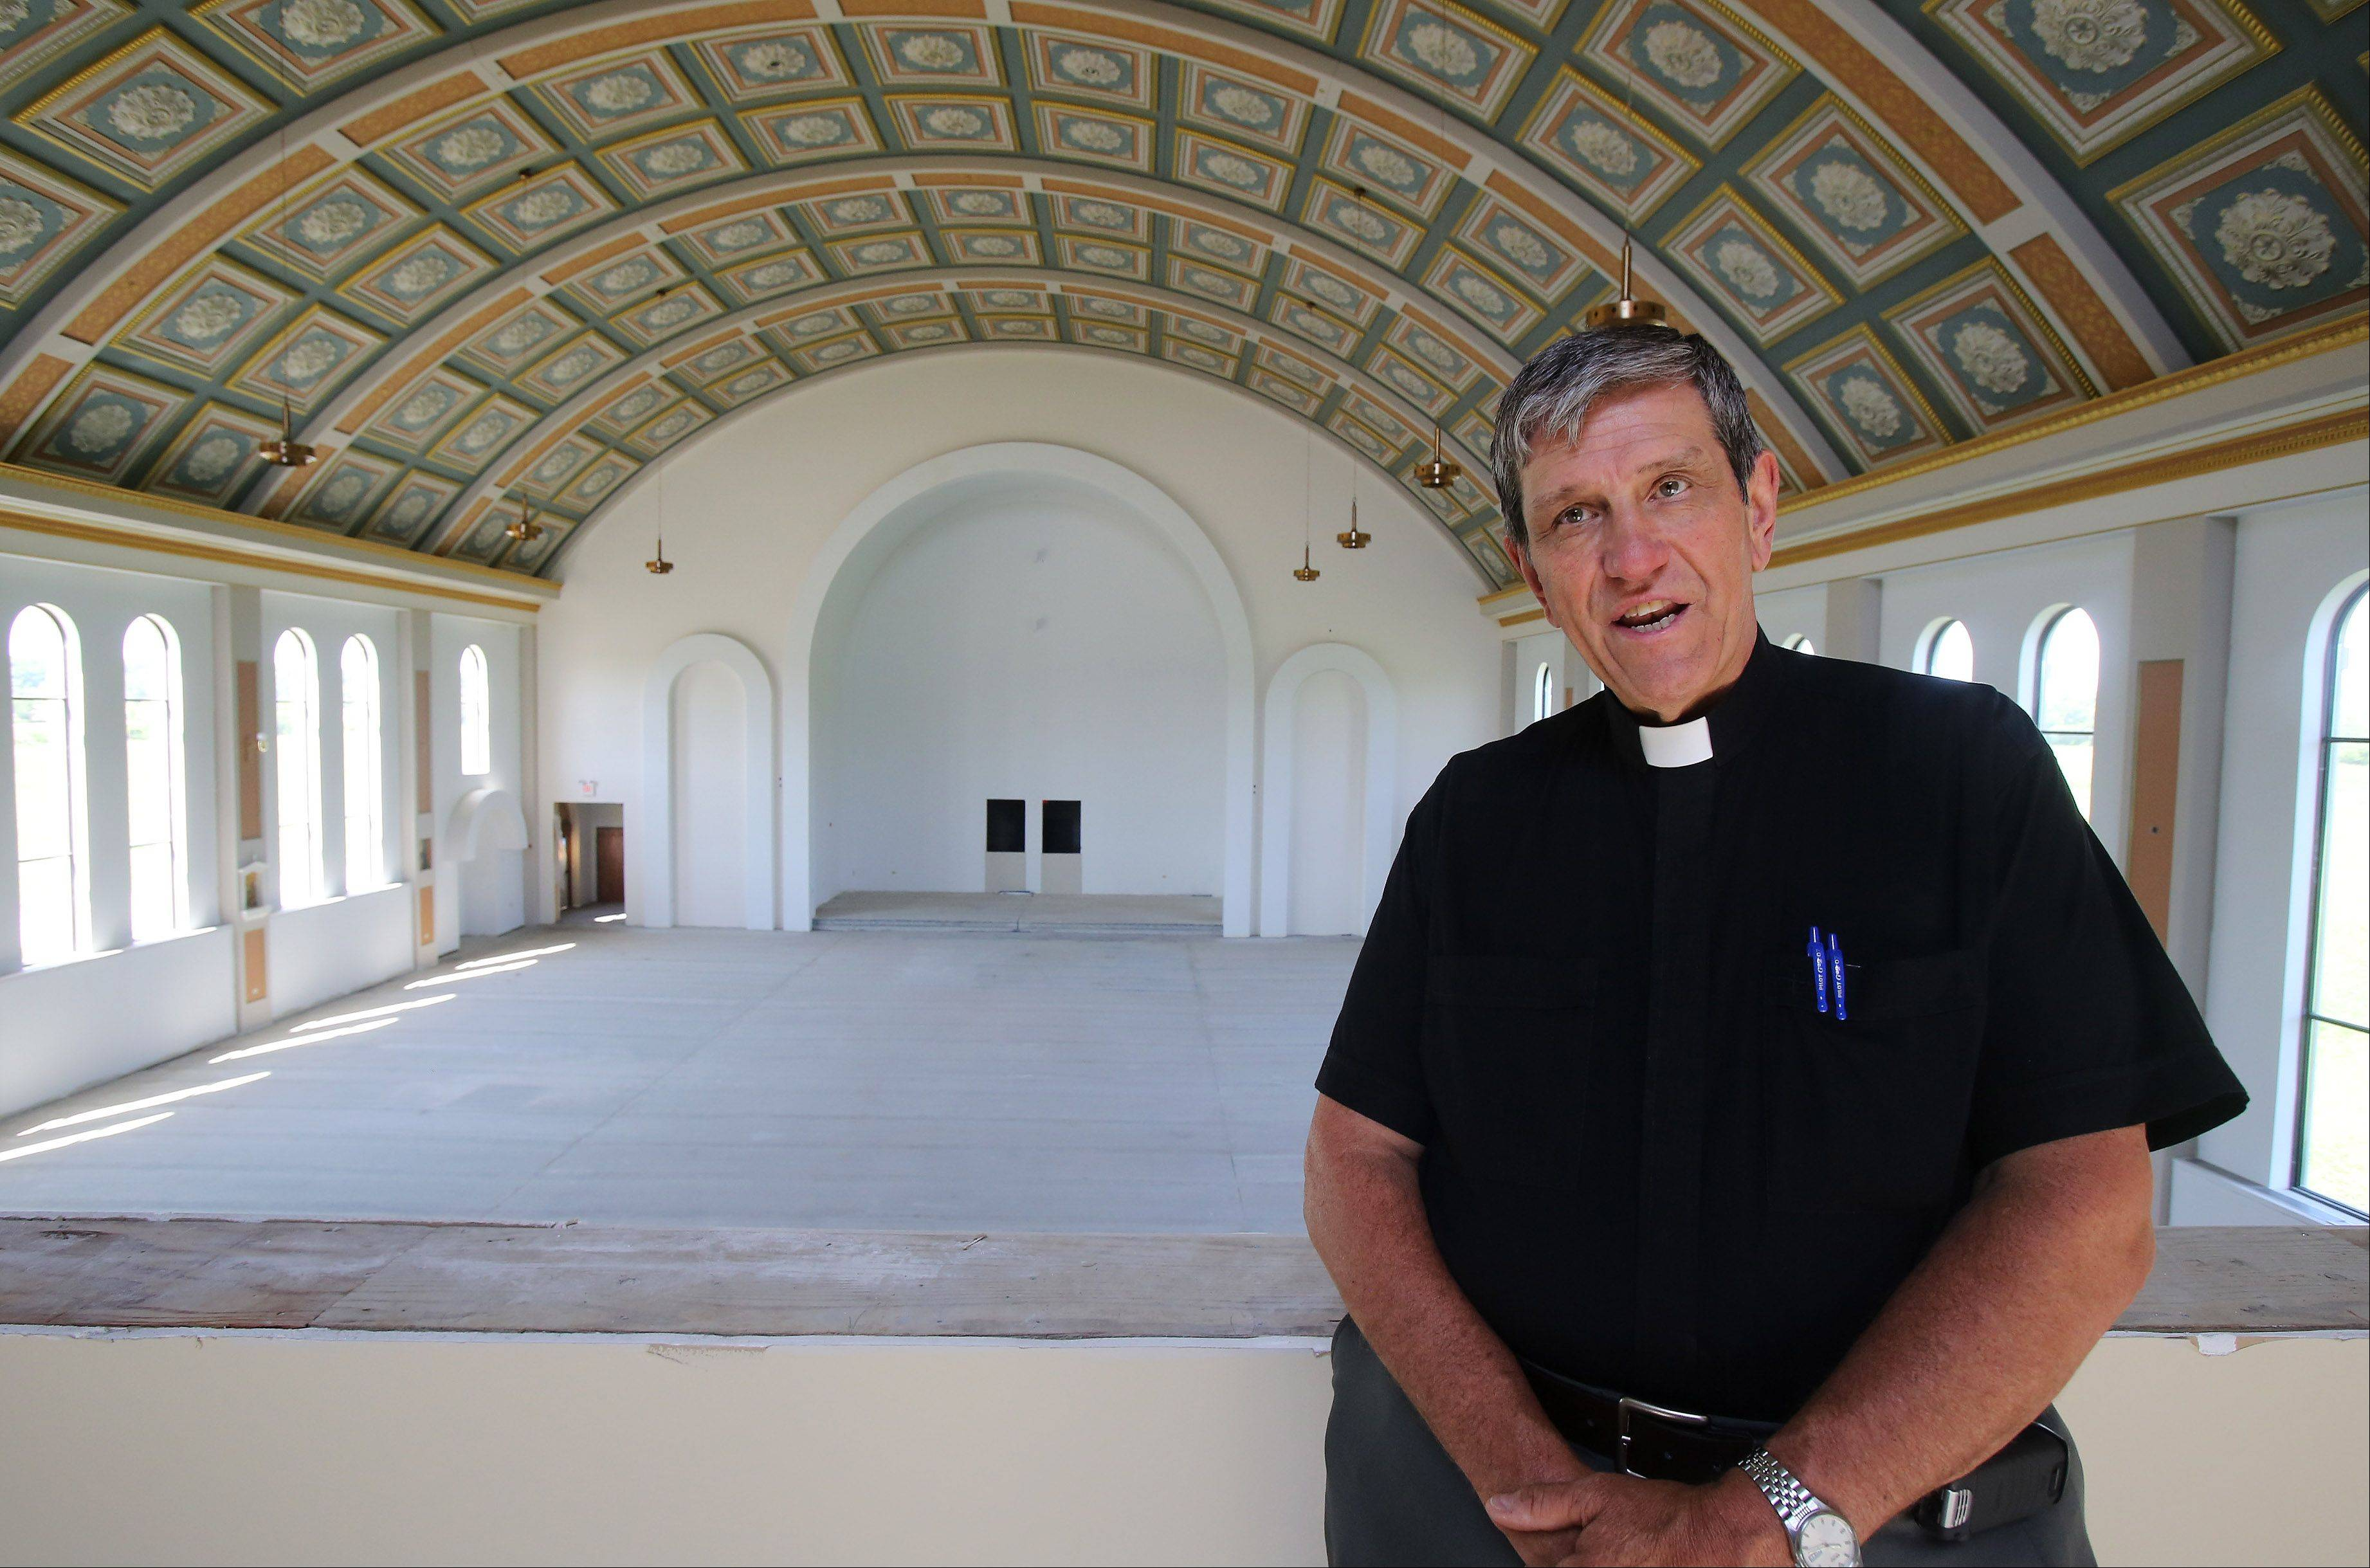 The Rev. John Jamnicky, pastor of St. Raphael the Archangel Catholic Church, discusses plans for the new church building in Old Mill Creek. Services have been held in a converted machine shop on a farm on Route 173 since the parish was established in 2007.